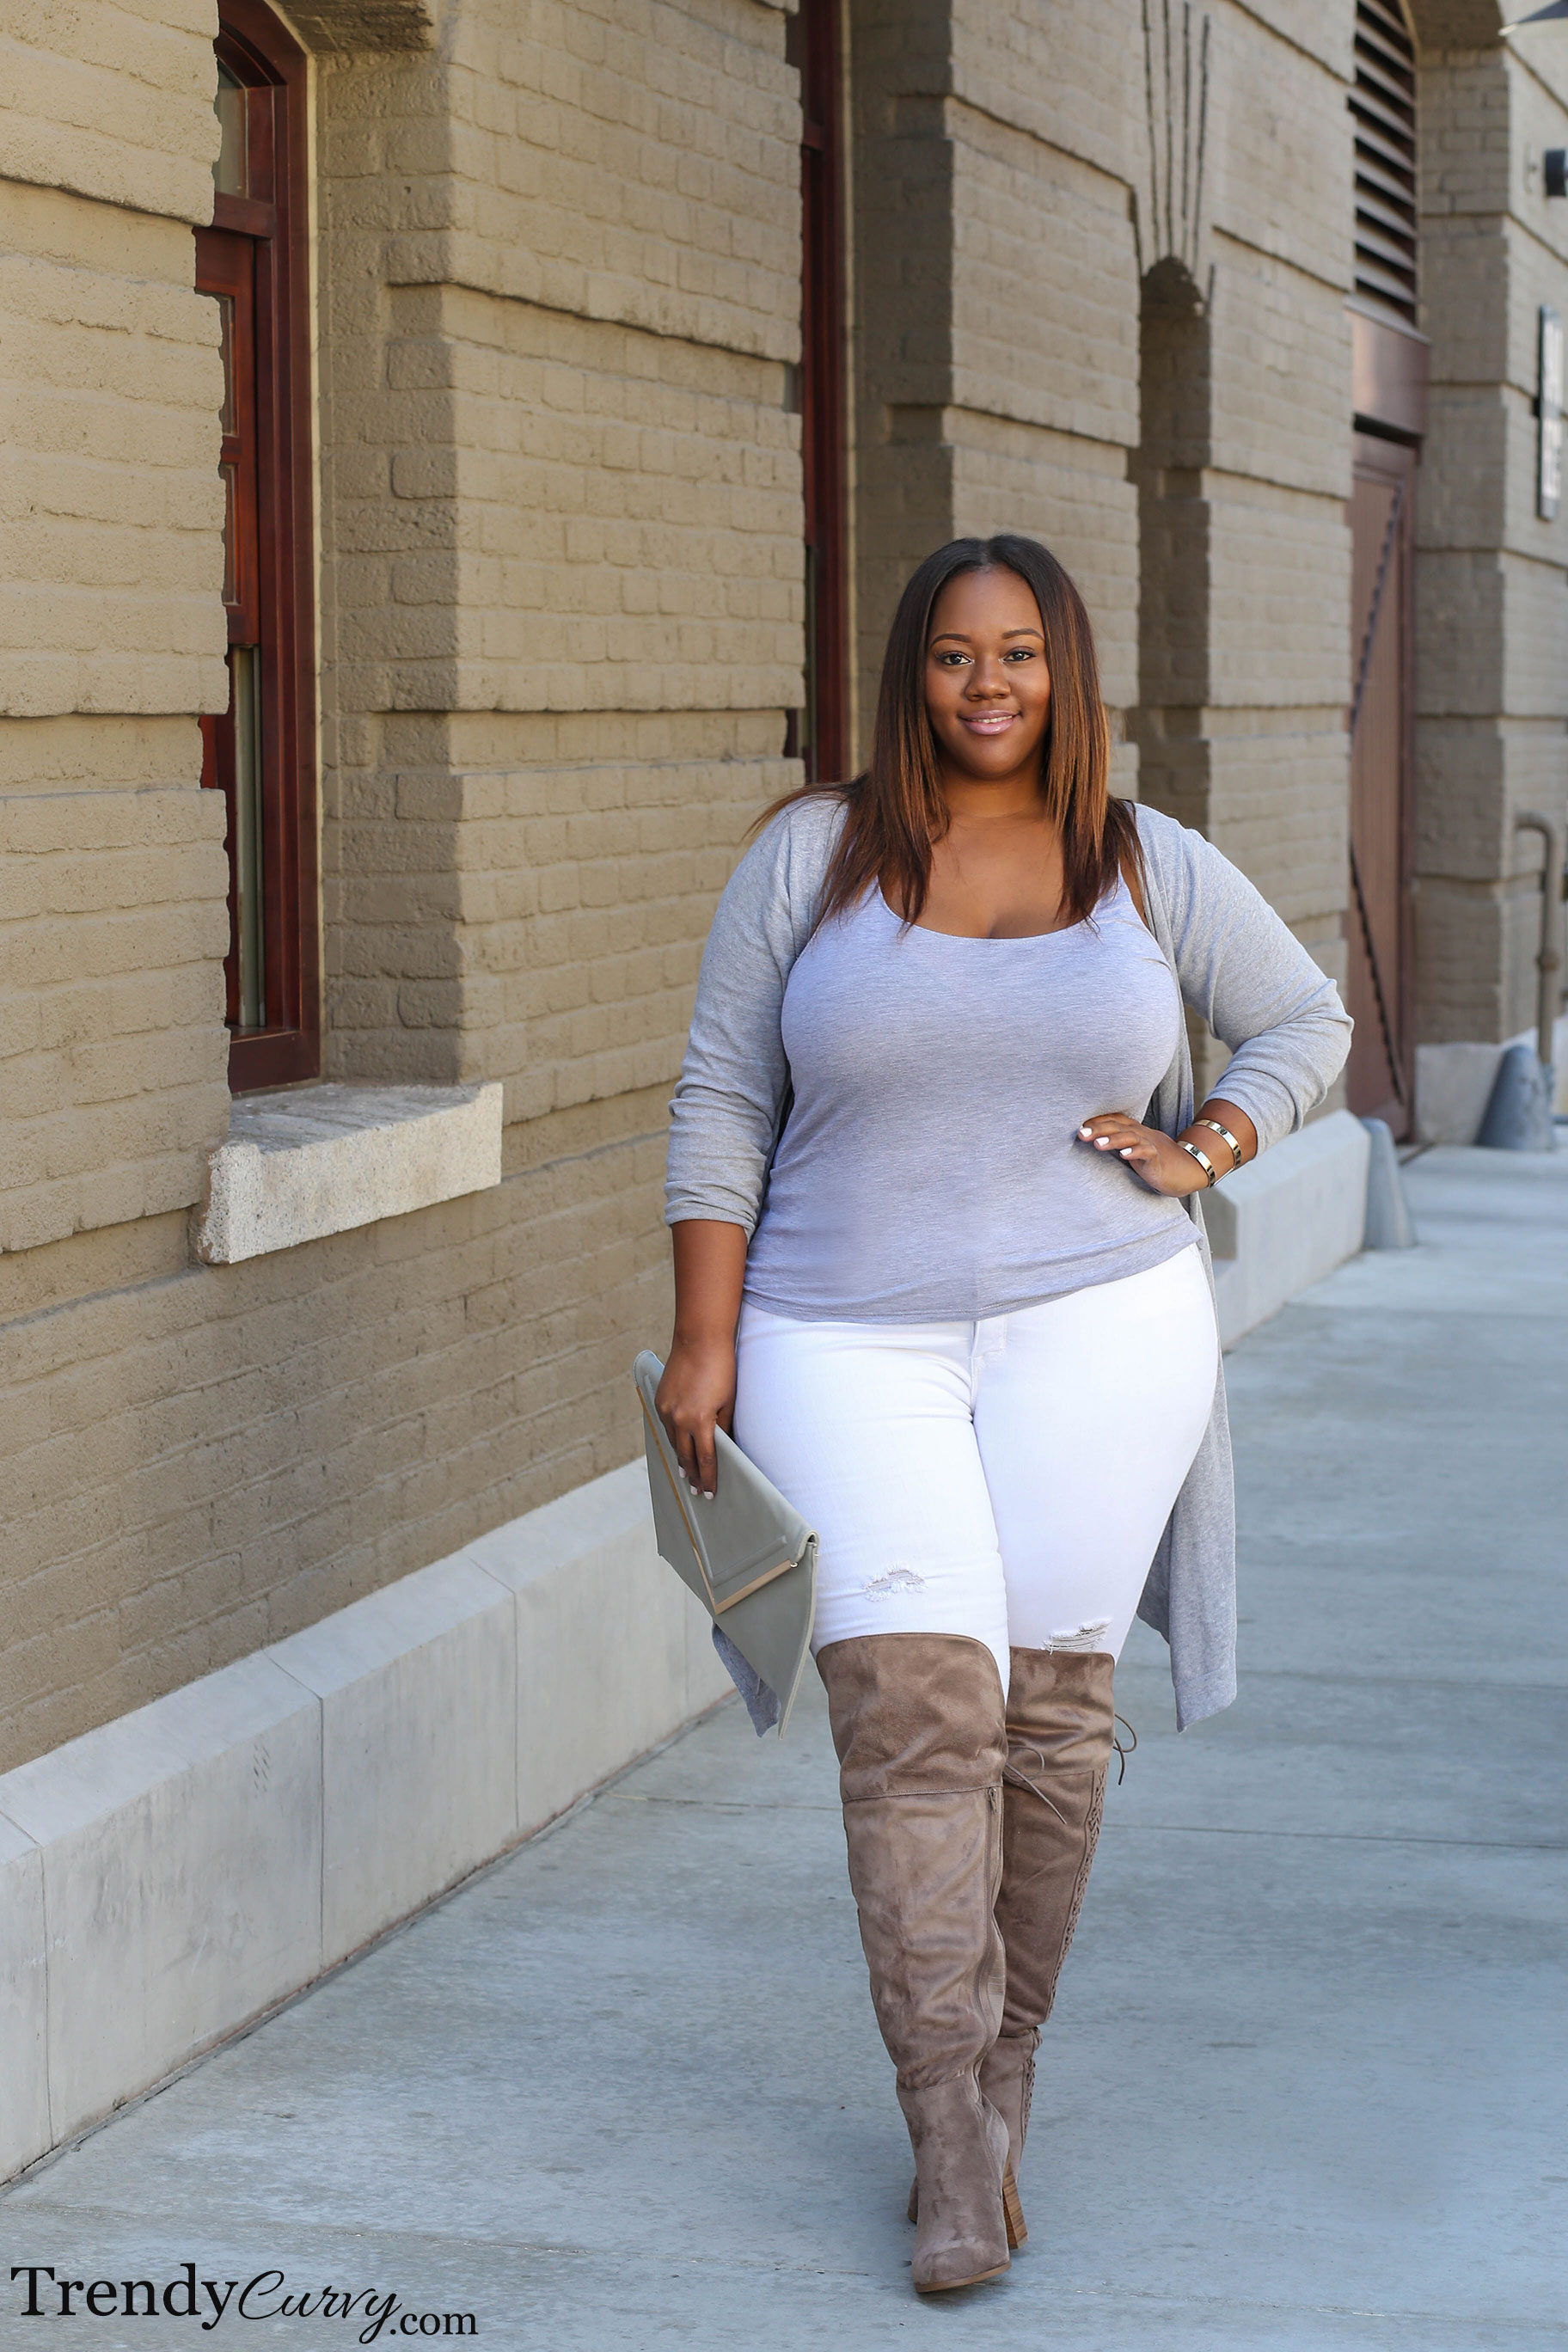 How to wear leggings with boots plus size